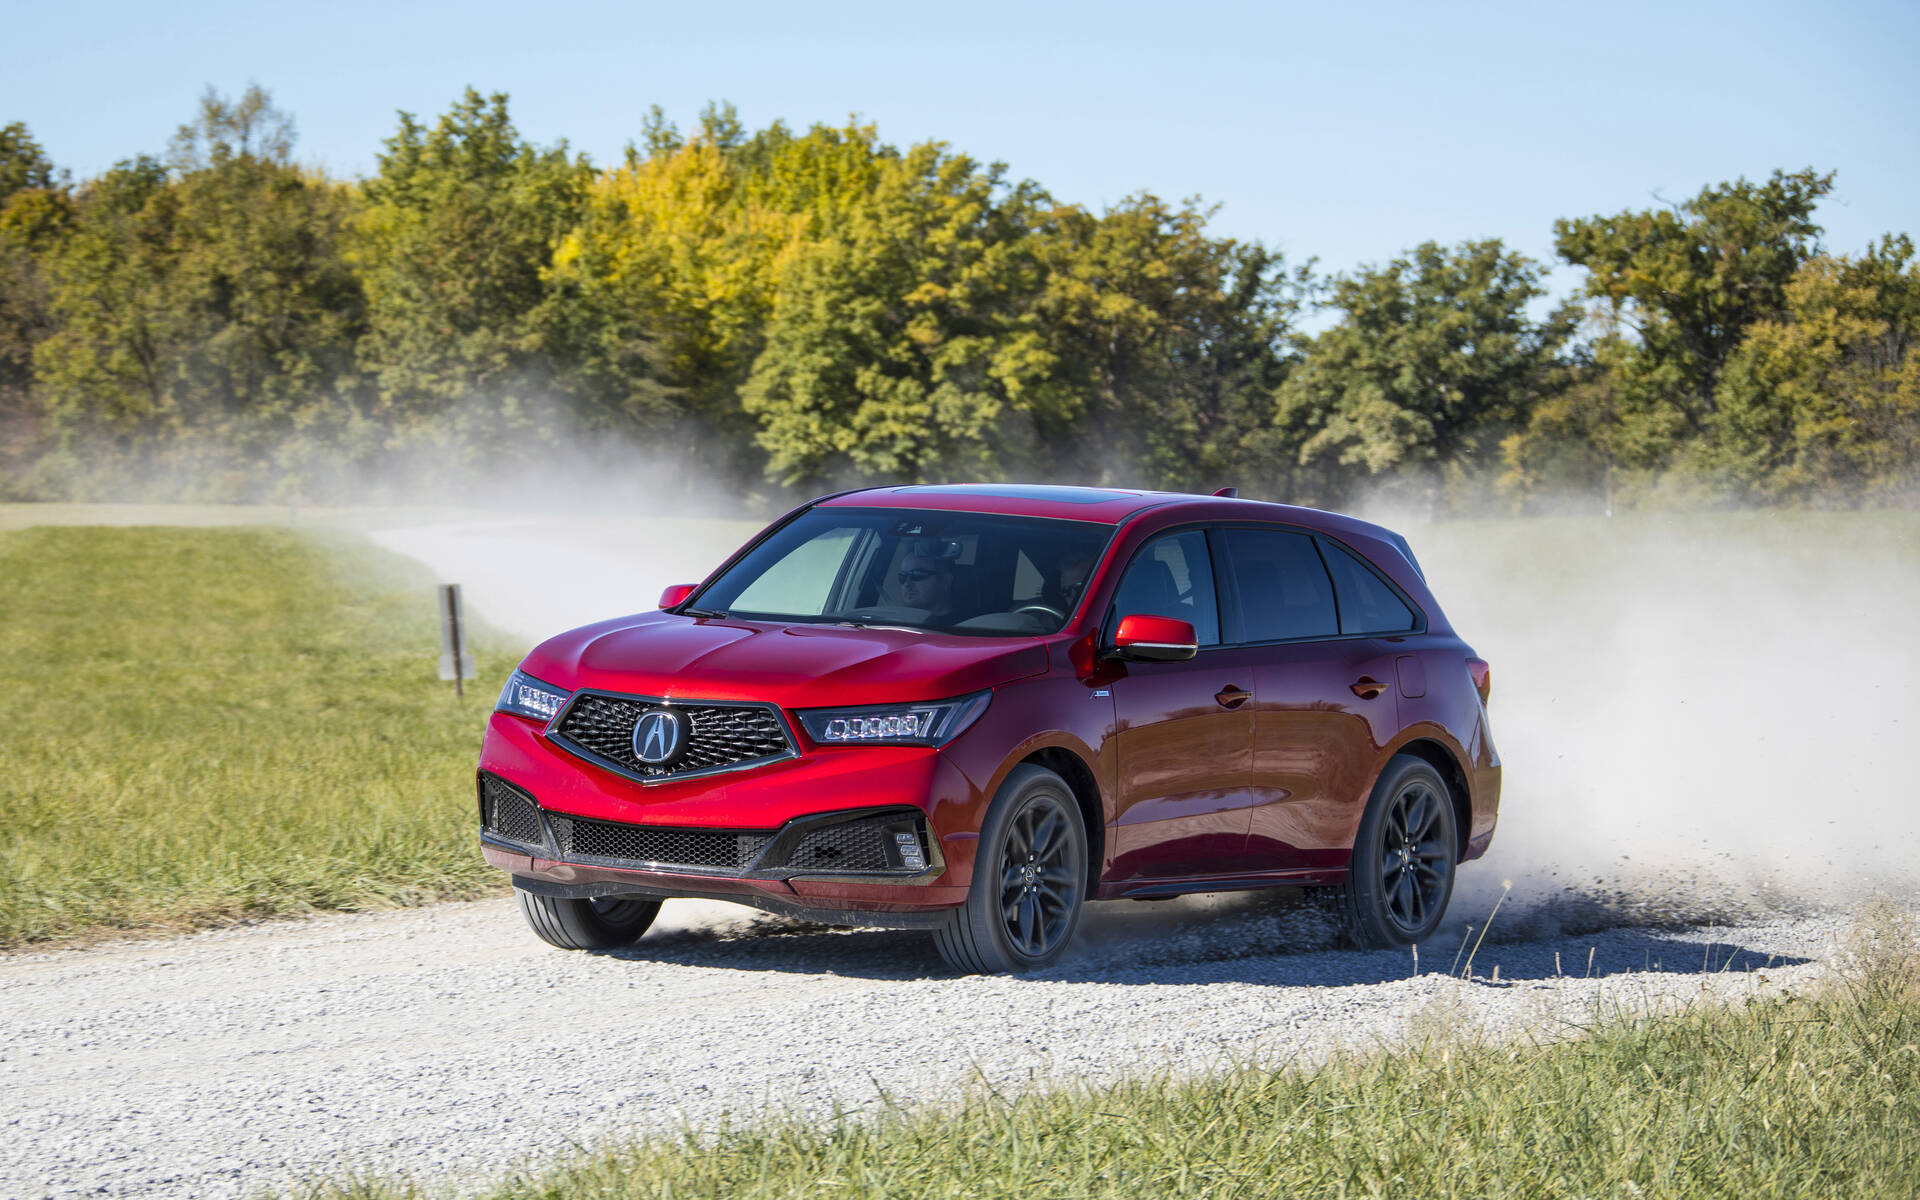 2021 Acura Mdx Specifications The Car Guide